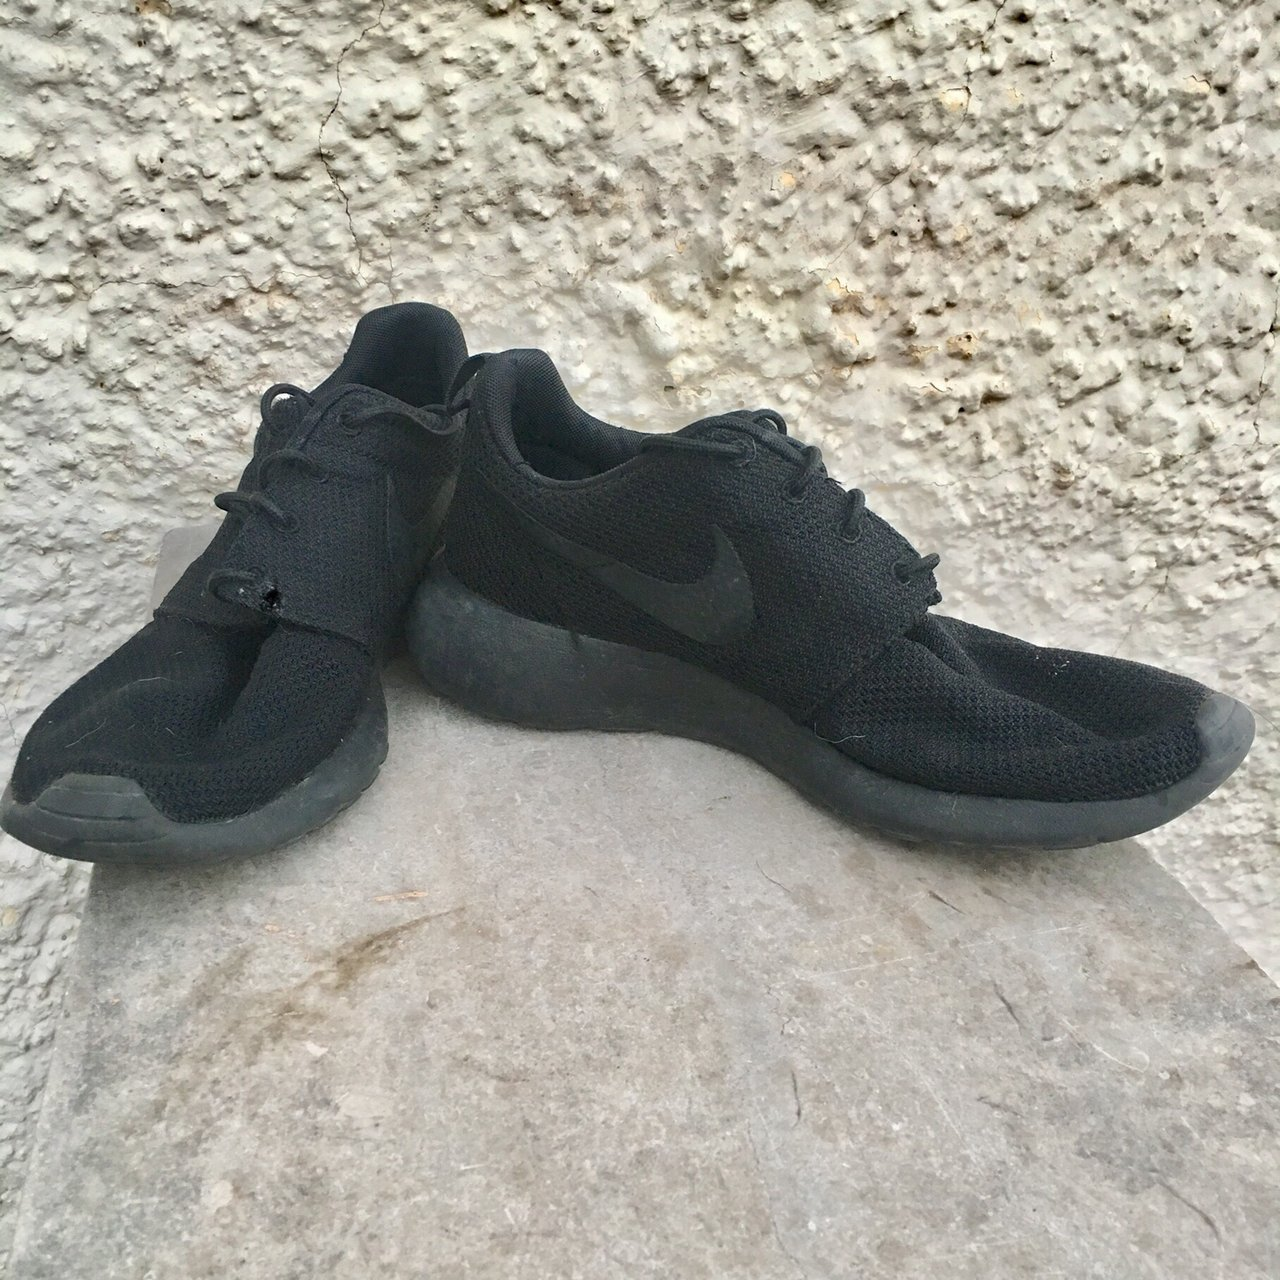 a6e36078275cd8 Nike Roshe Run limited edition all black. Men s size 8. Worn - Depop